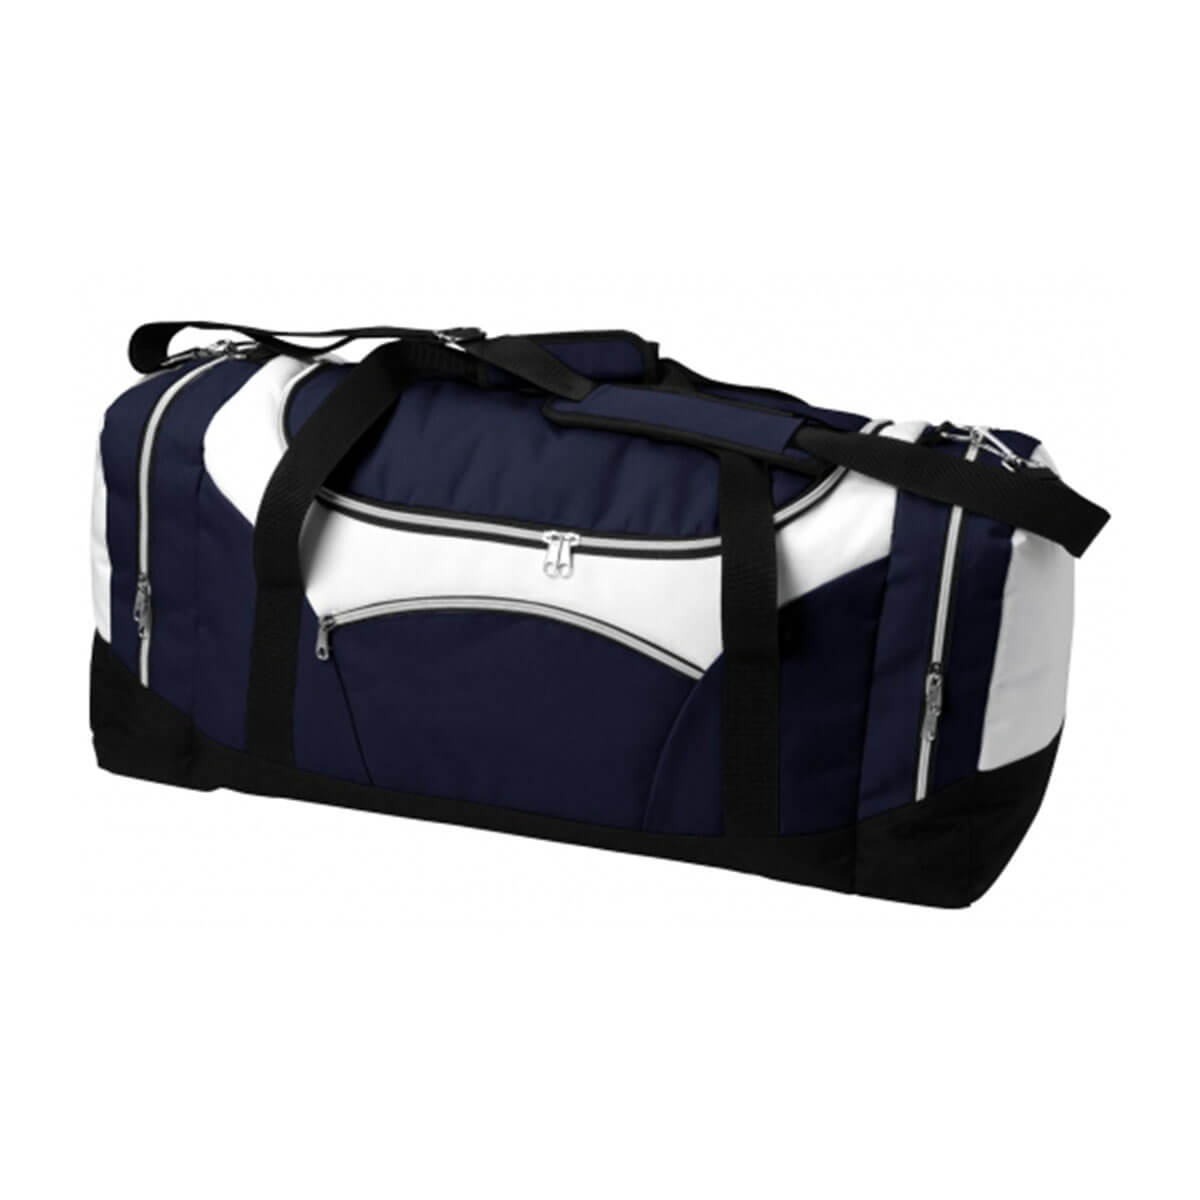 Stellar Sports Bag-Navy / White